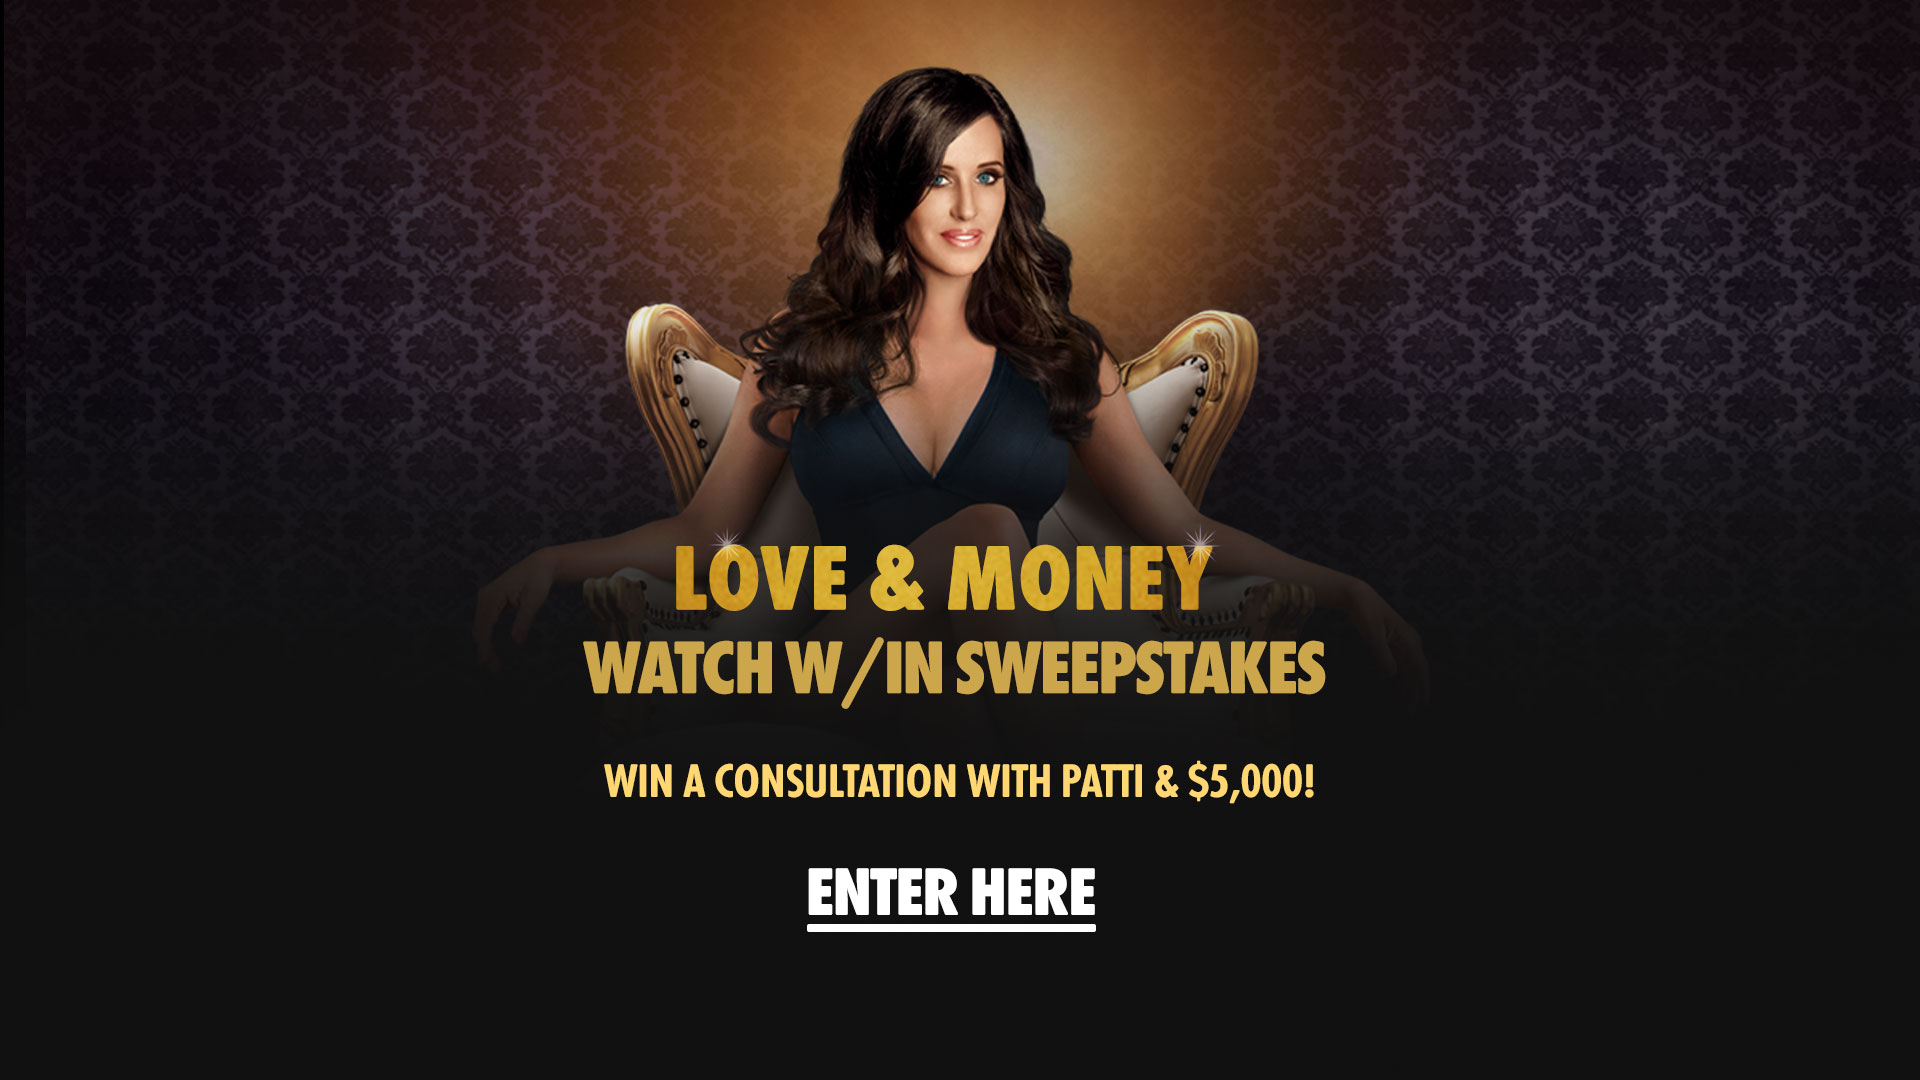 Tv guide new girl sweepstakes